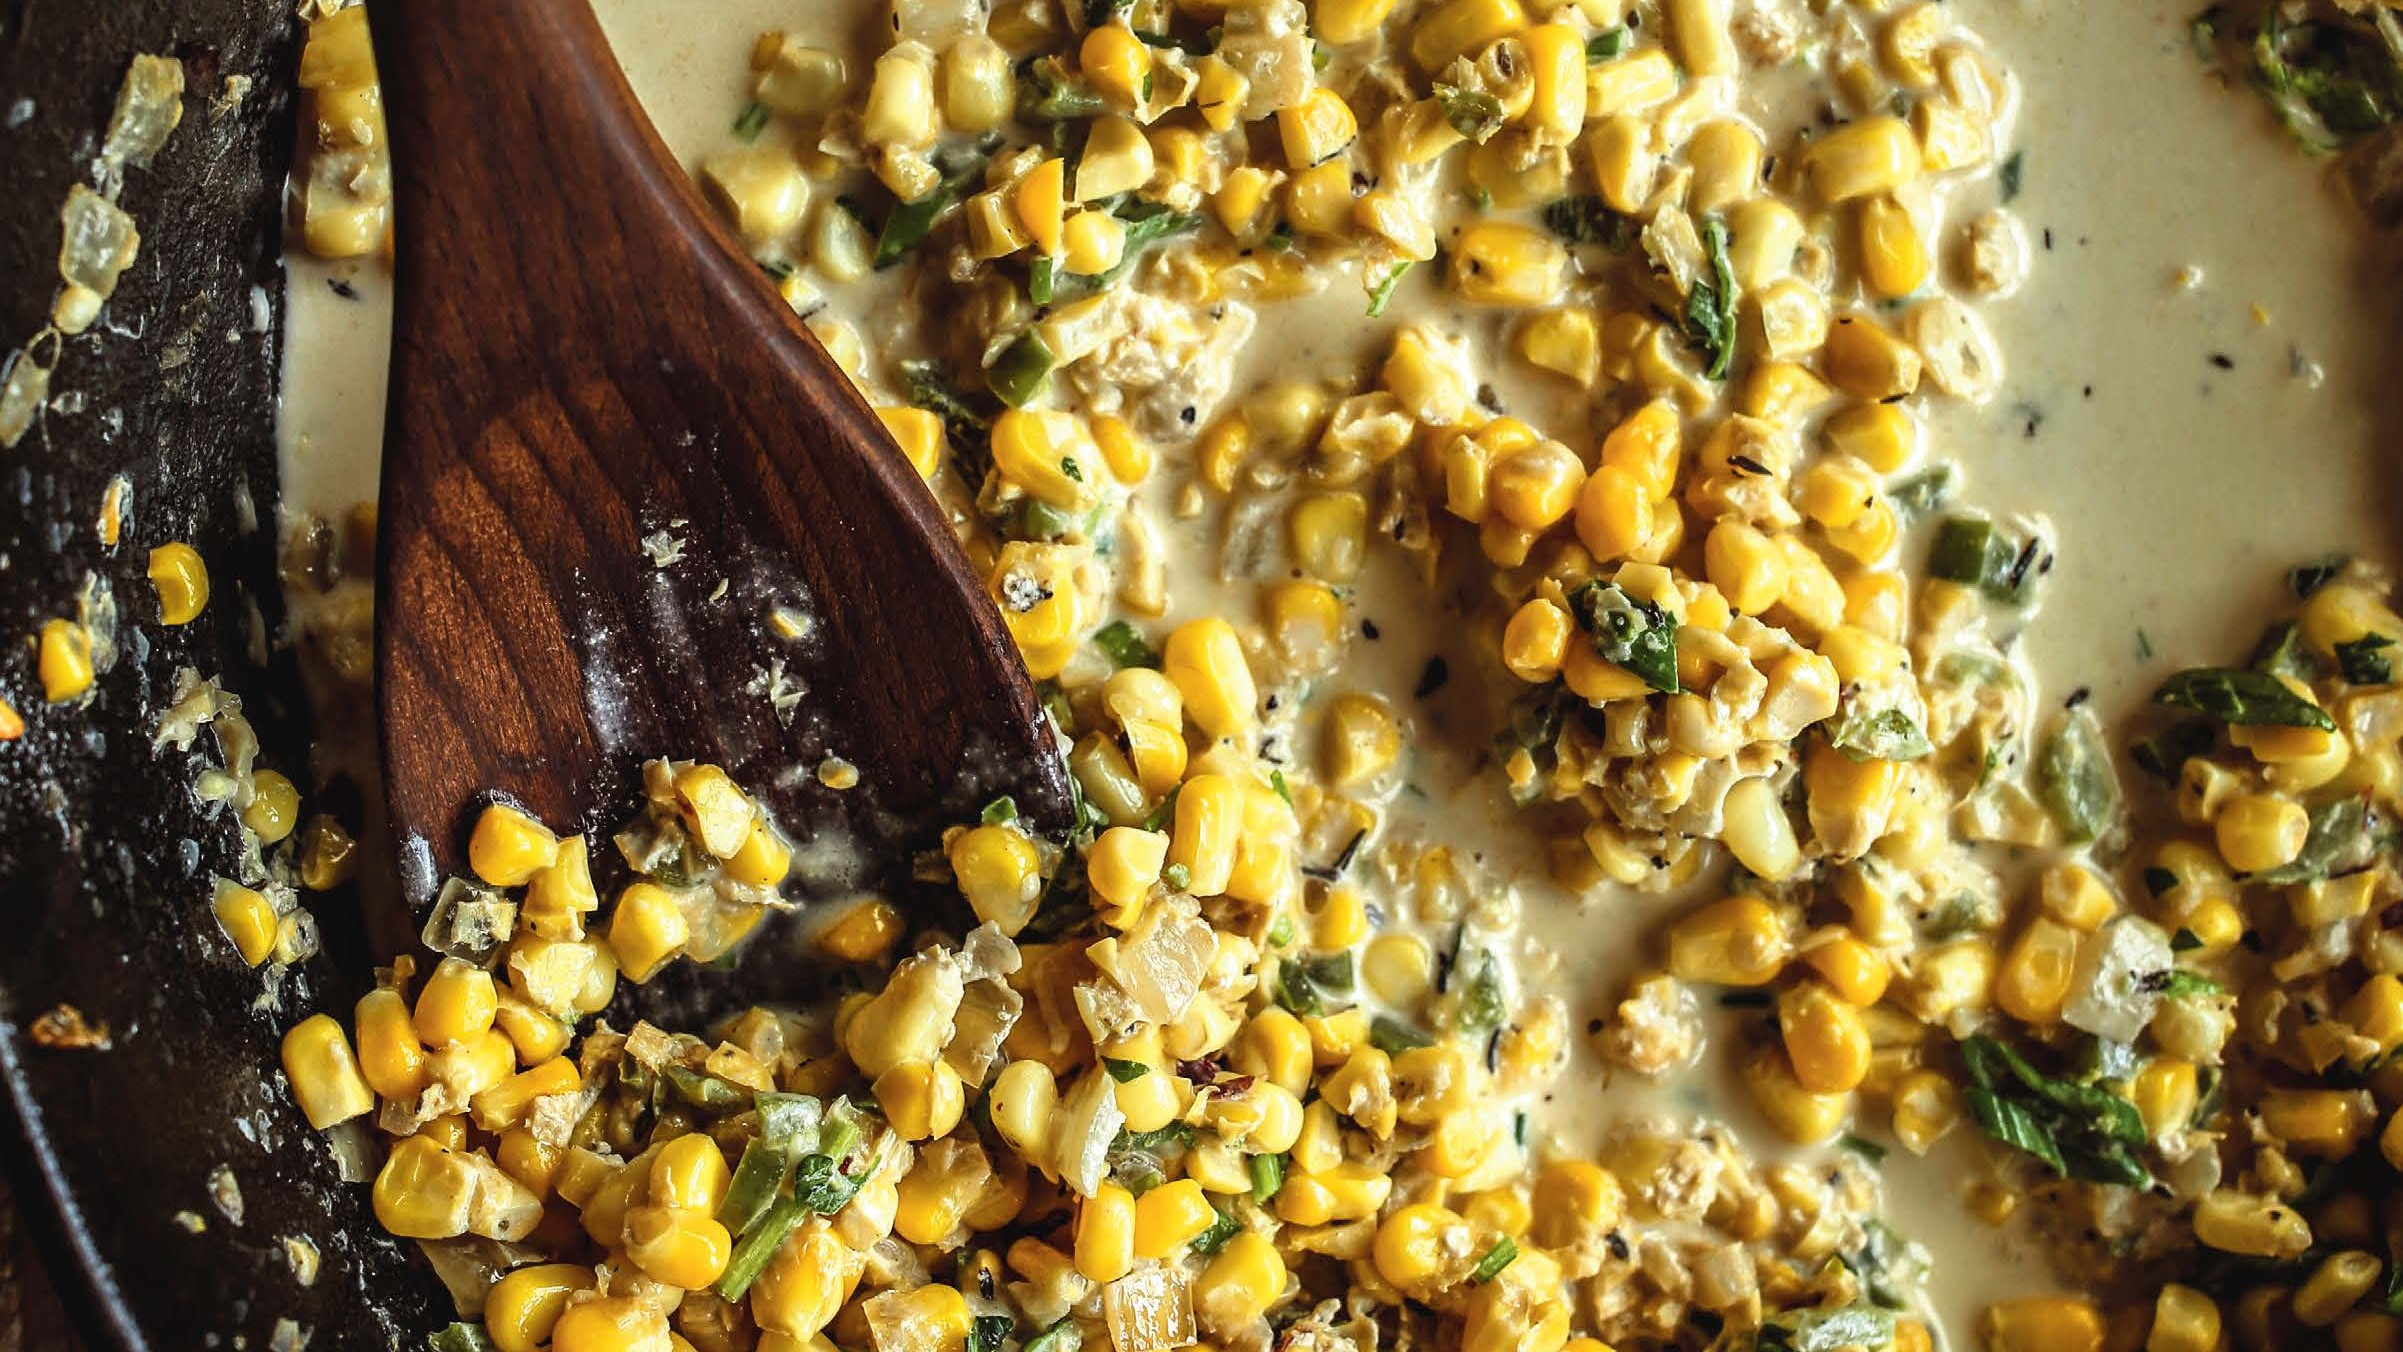 Corn: Maque Choux (Fried Corn With Green Peppers)